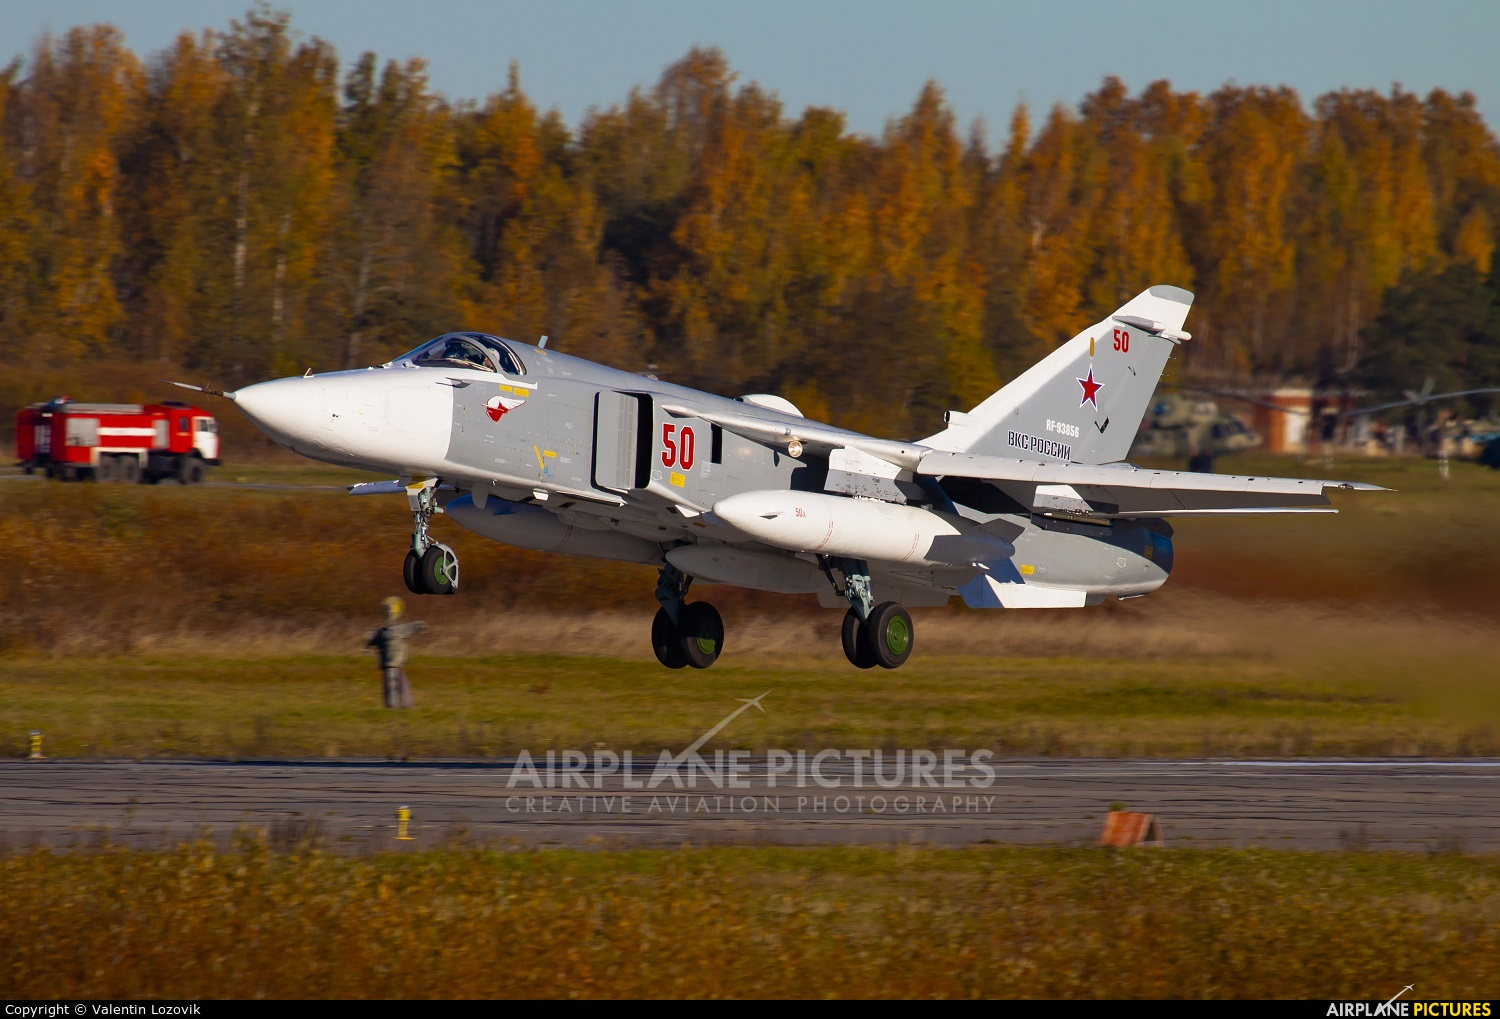 Russia - Air Force RF-93856 aircraft at Undisclosed location